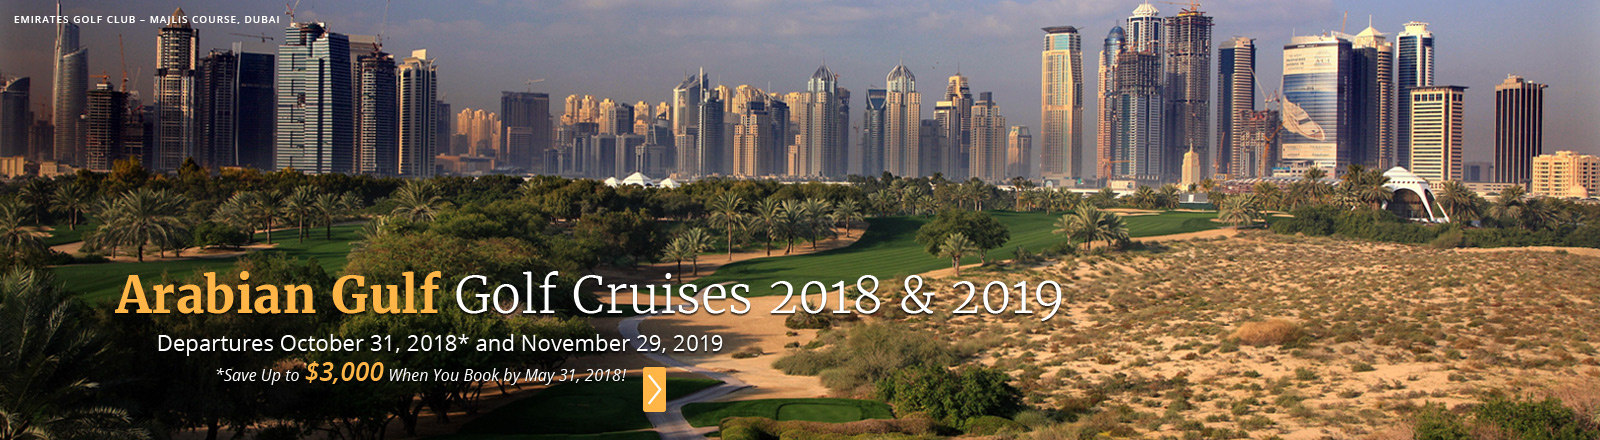 Arabian Gulf Golf Cruise